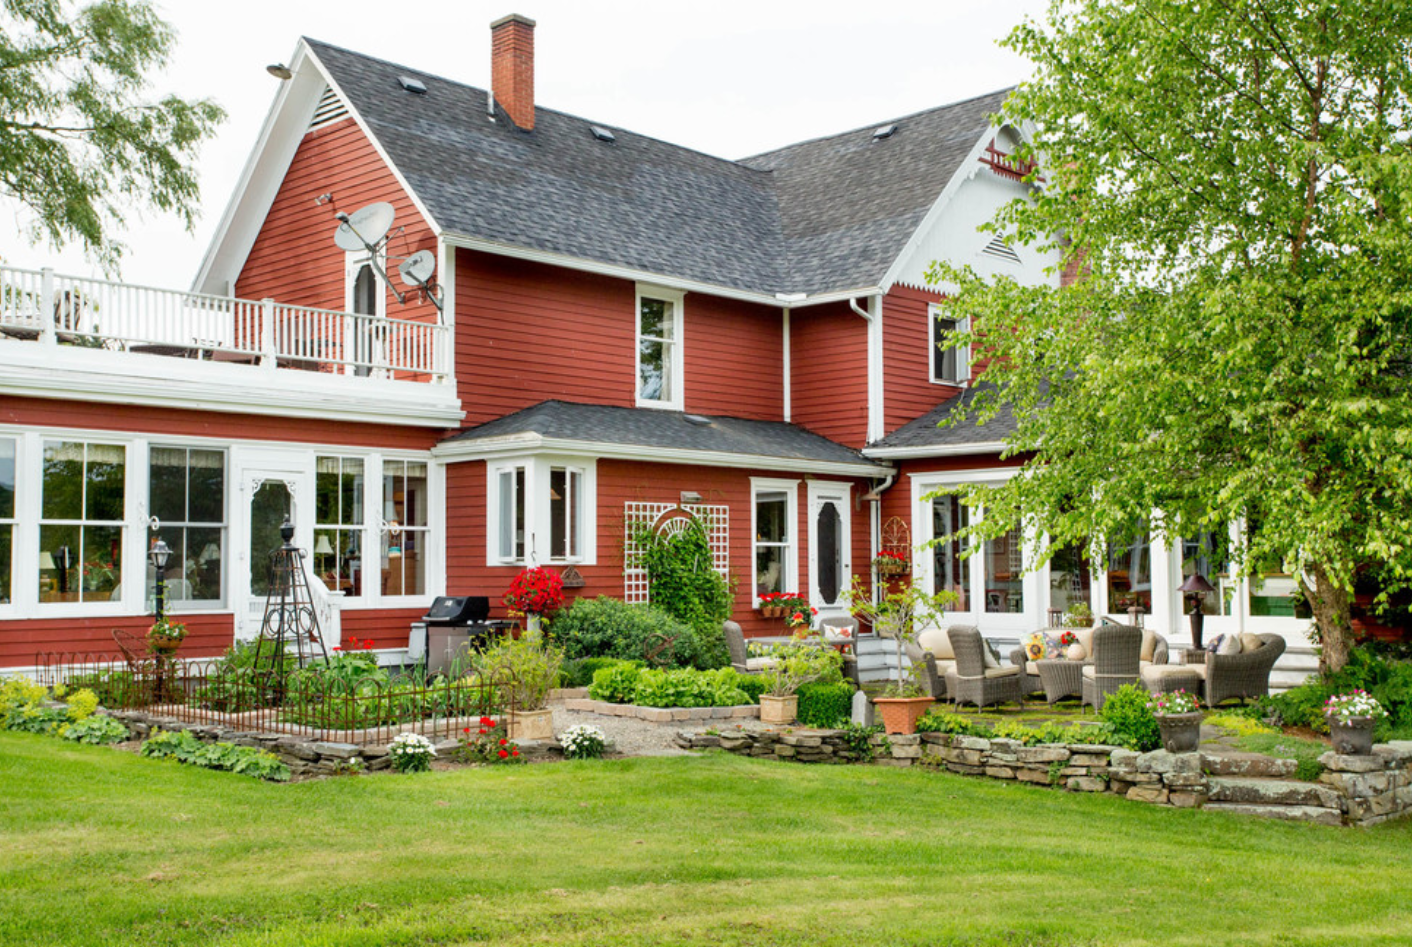 My Houzz: An Updated 1850s Farmhouse Gem in New York